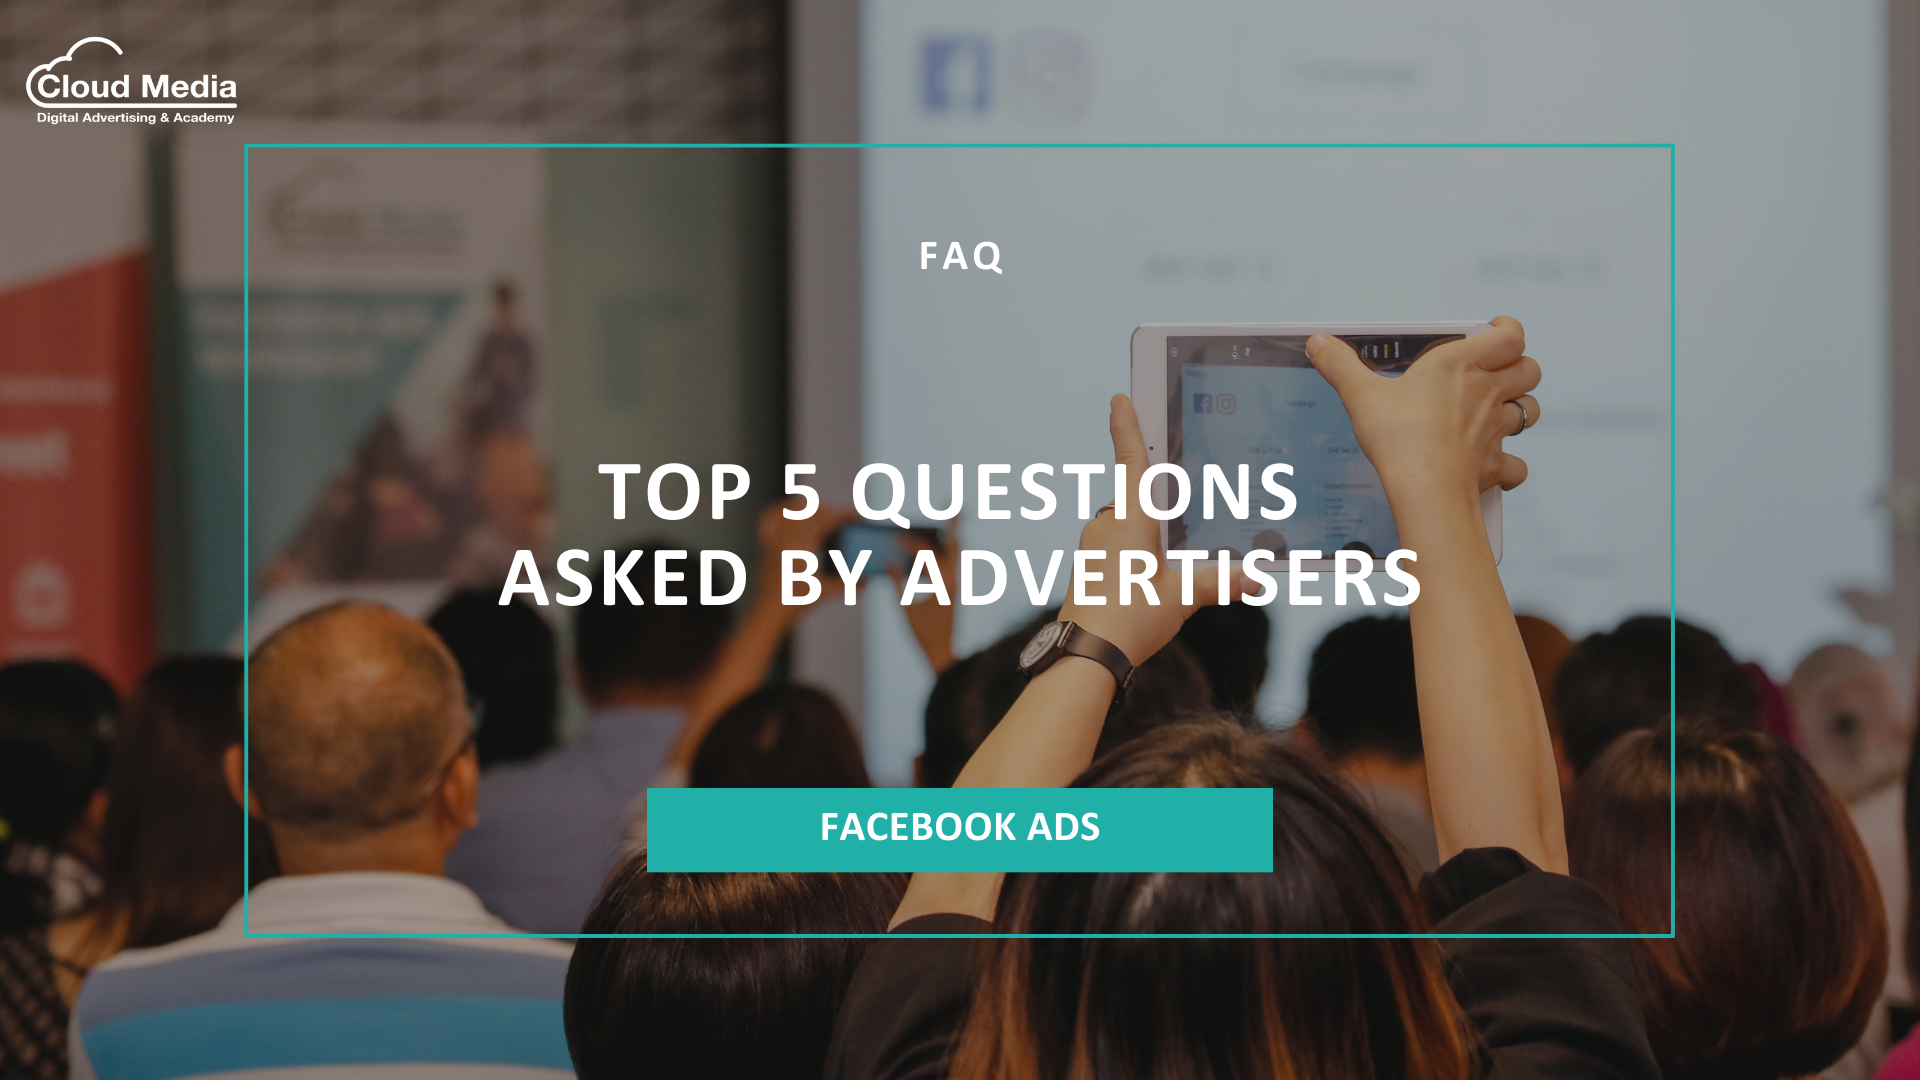 Top 5 Questions Asked by Advertisers